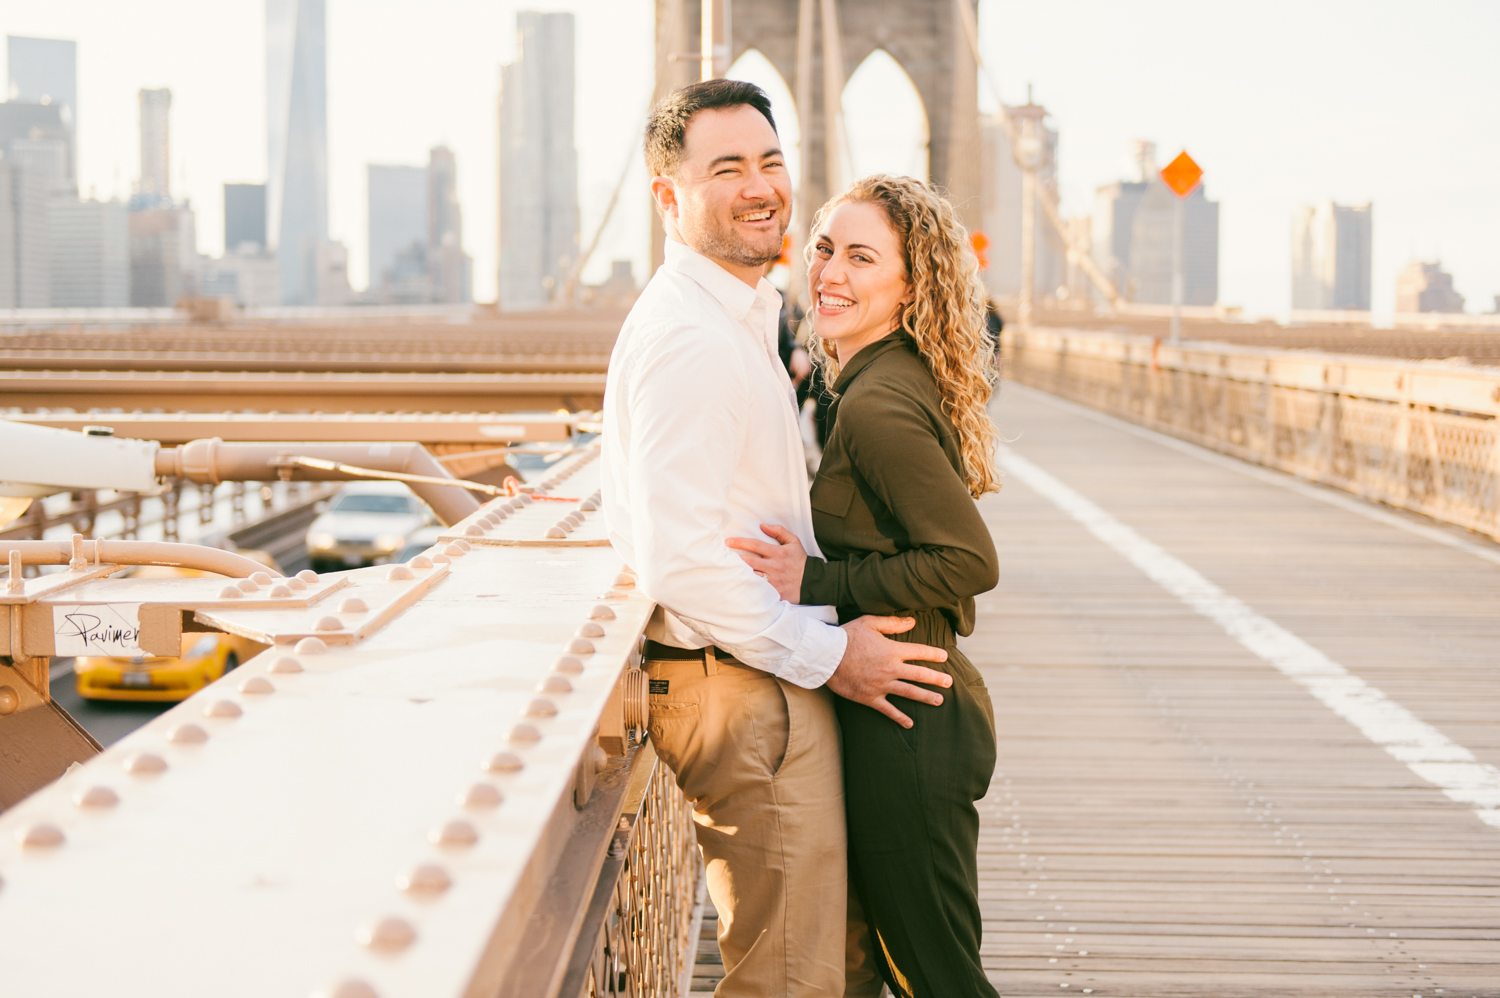 DUMBO.BrooklynBridgePark.FineArtWeddingPhotographer.KatHarris1.jpg